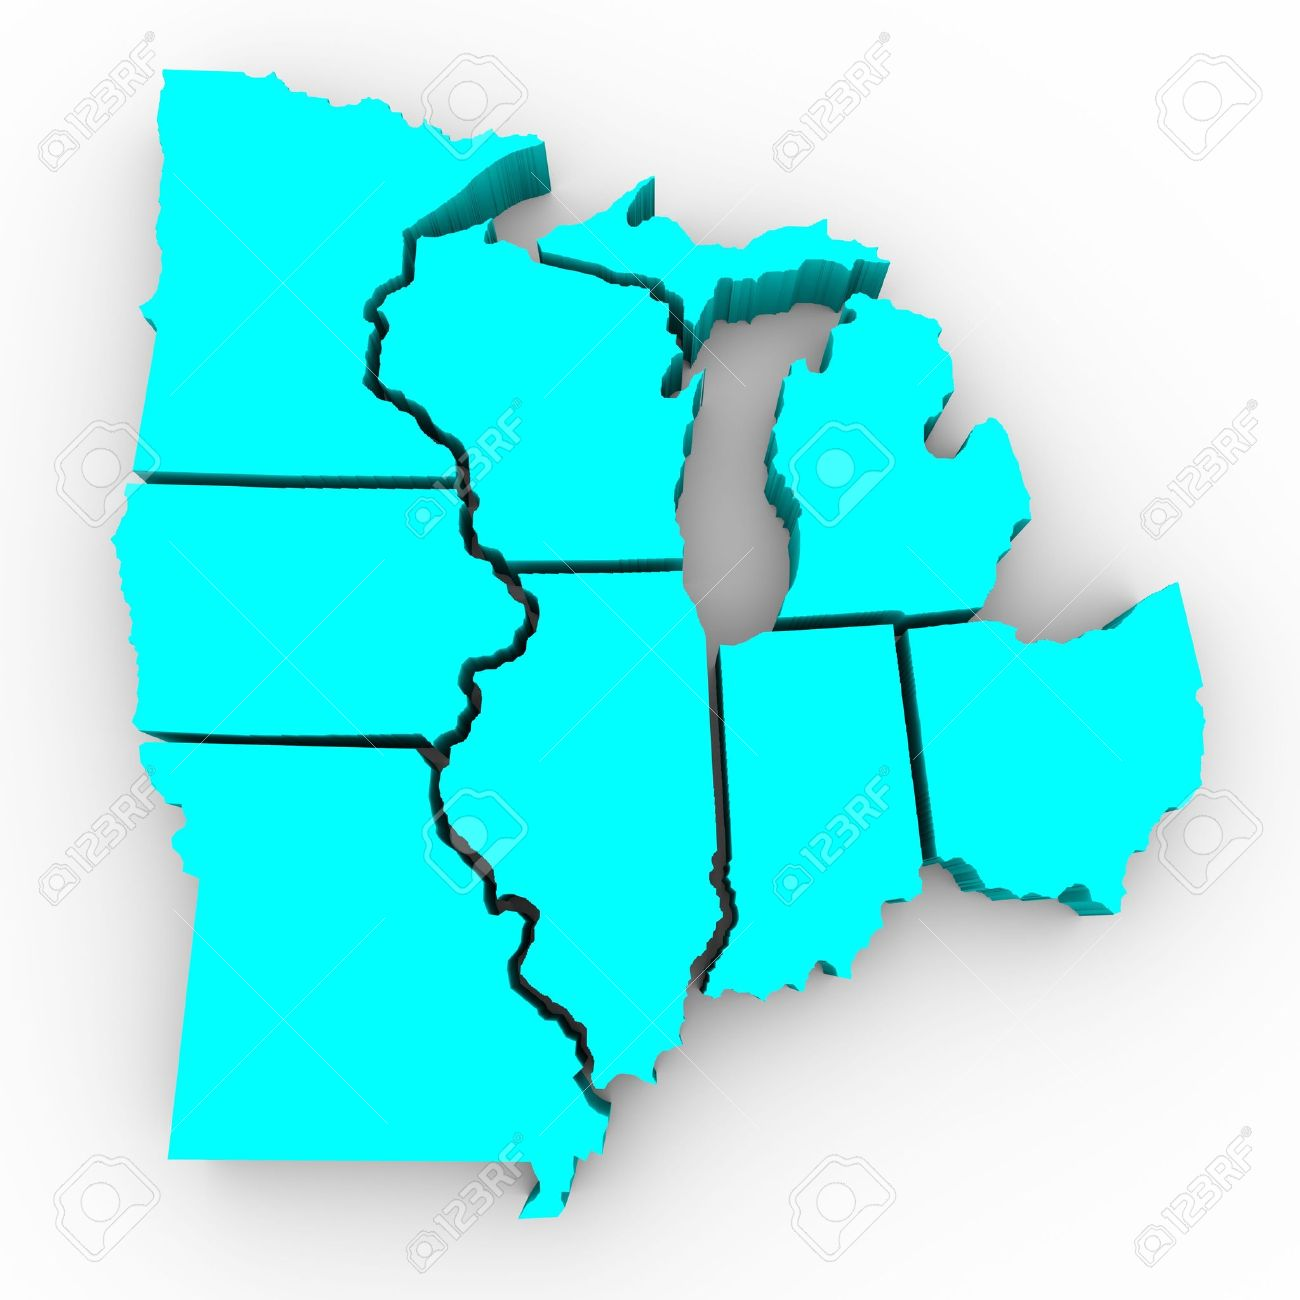 A 3d Map Of The Great Lakes Region Of States Michigan Ohio